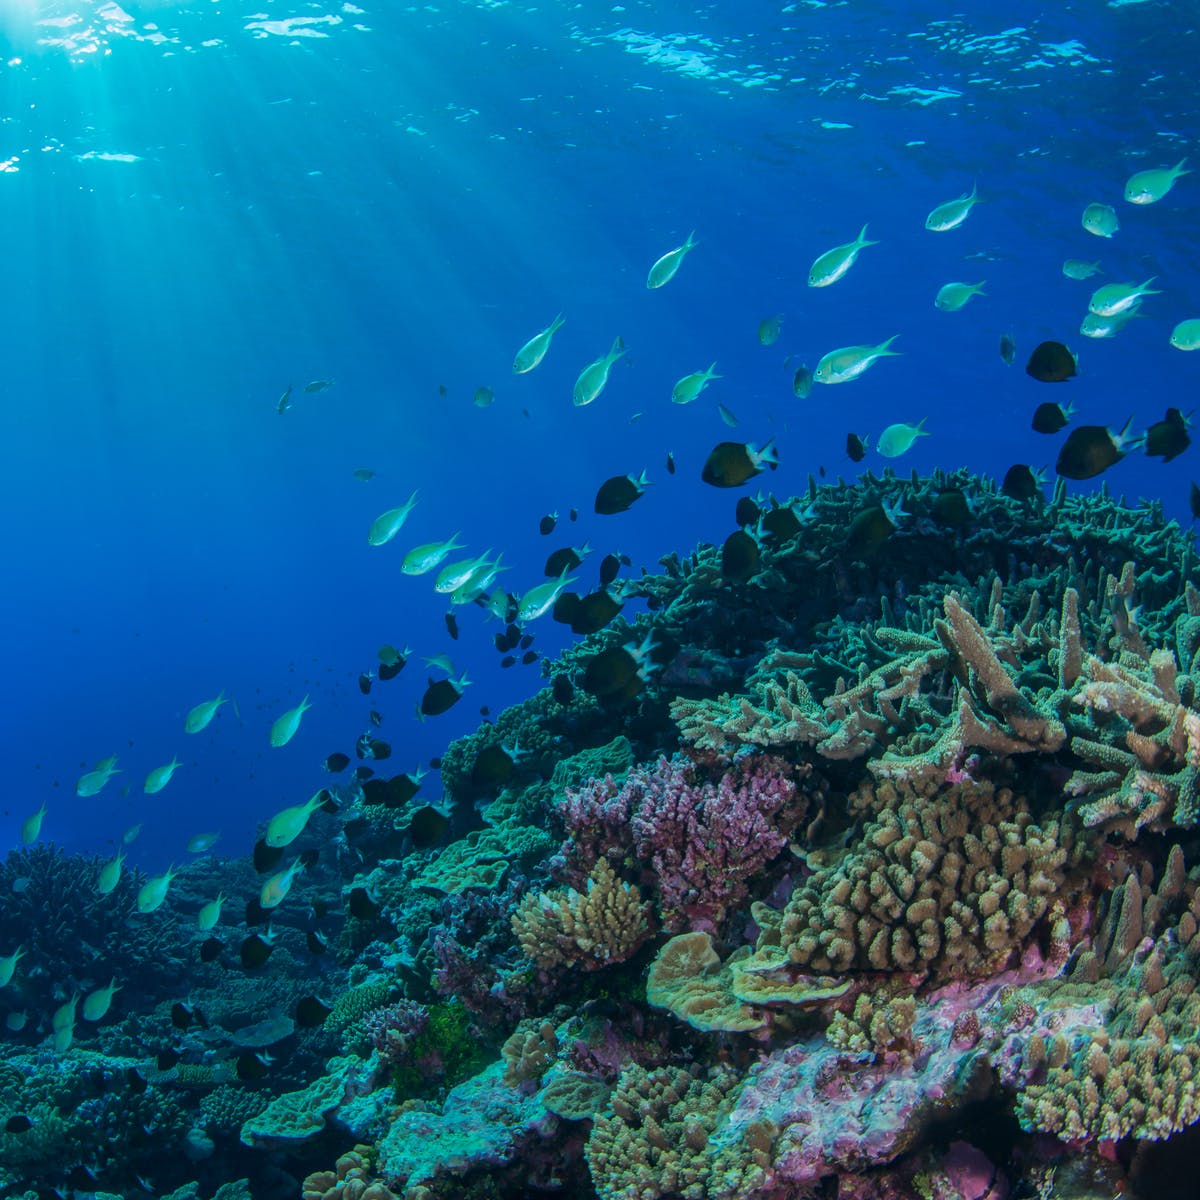 The 2016 Great Barrier Reef heatwave caused widespread